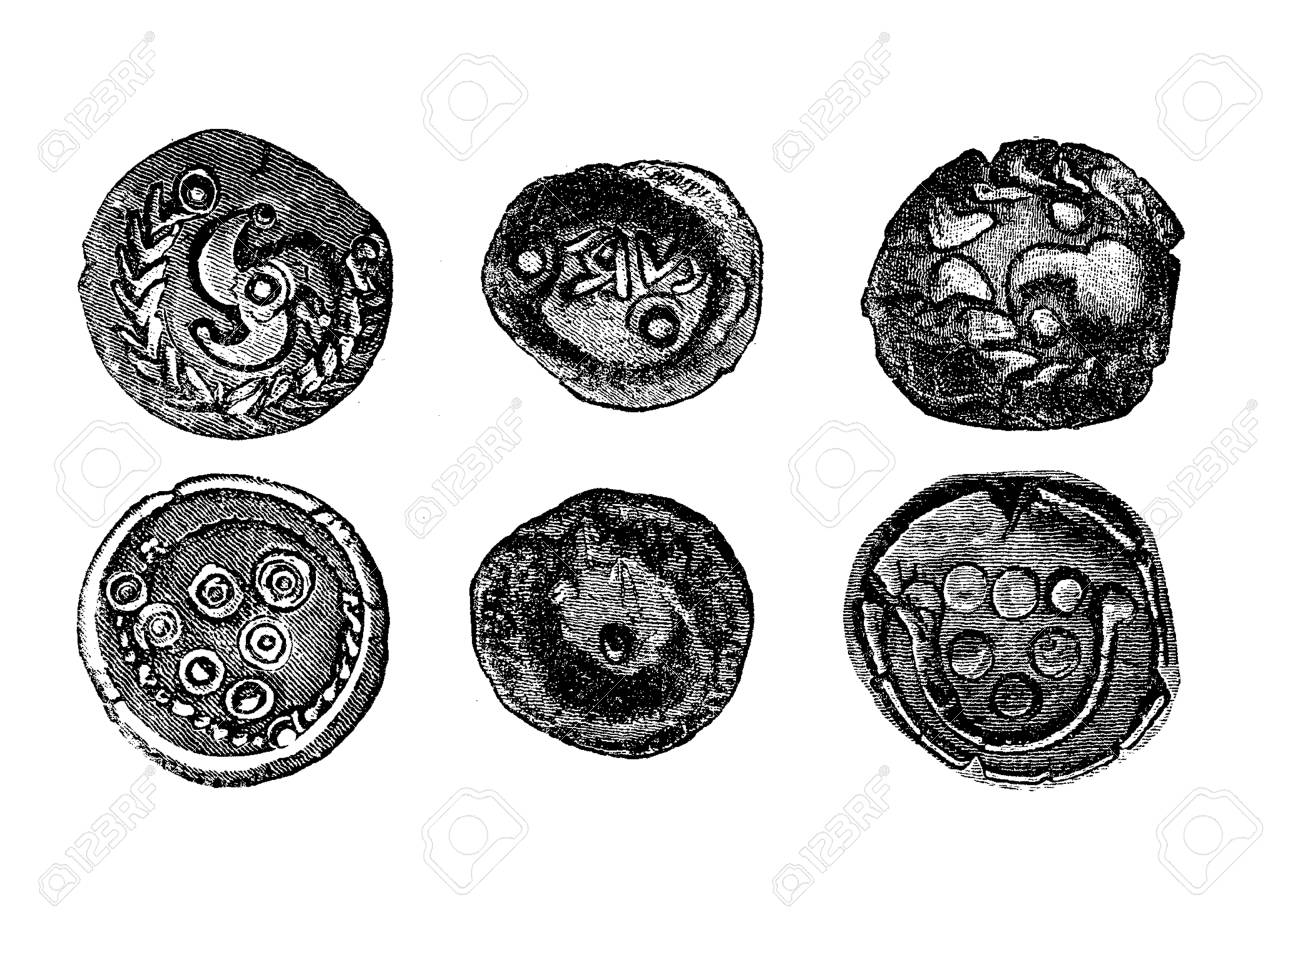 Vintage Engraving Of Golden Coins Of The Celts In Iron Age Stock